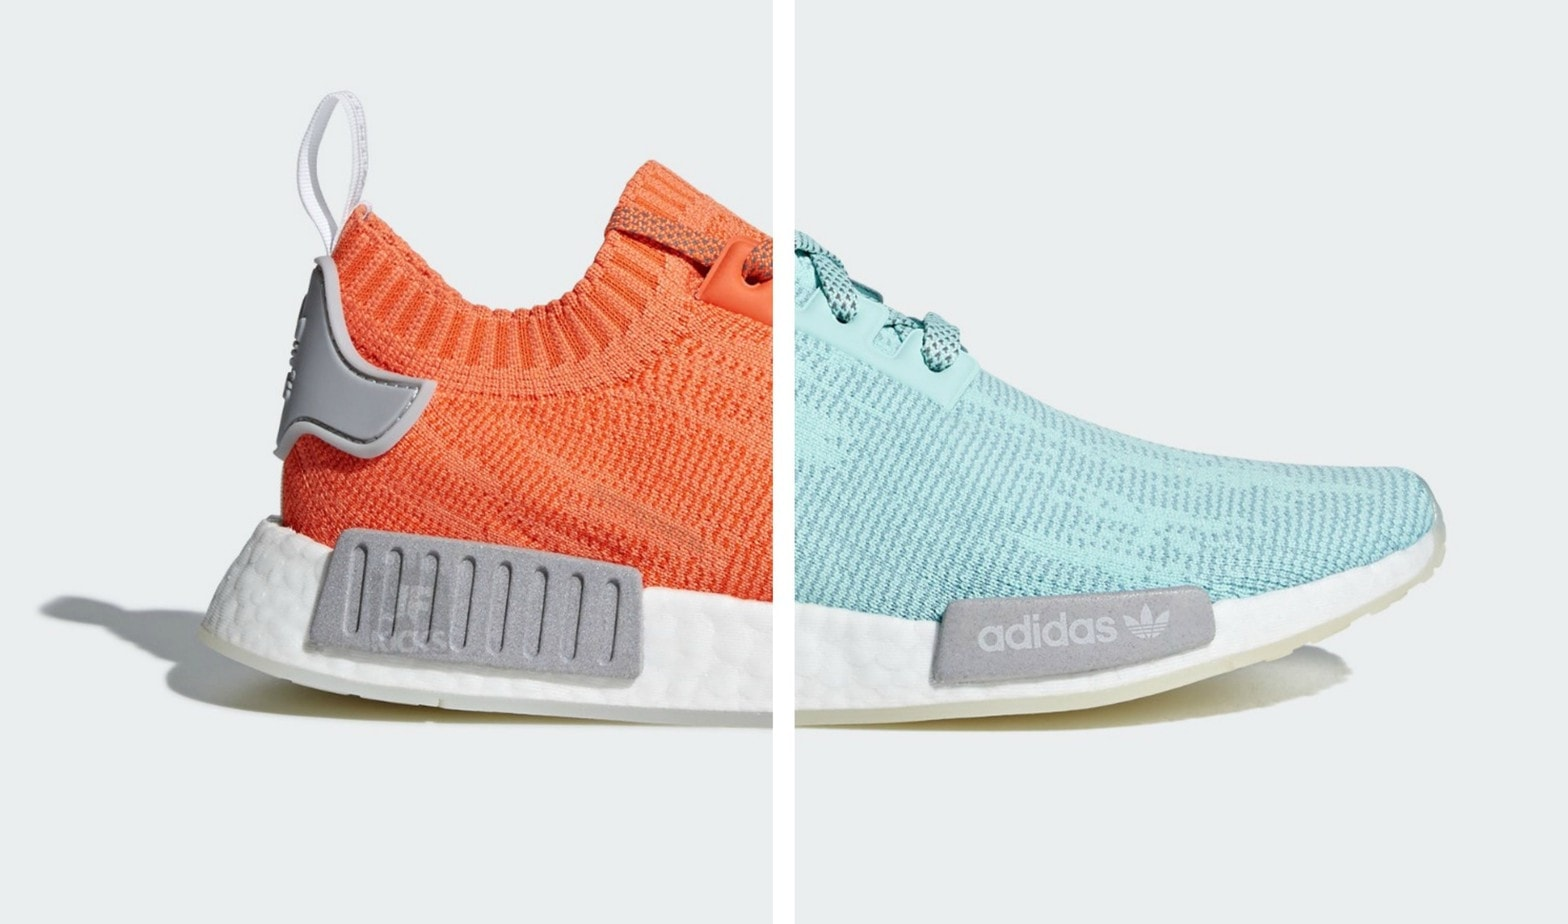 adidas NMD R1 Digi Camo Pack Aqua Orange 2018 - JustFreshKicks 52c9ad51e